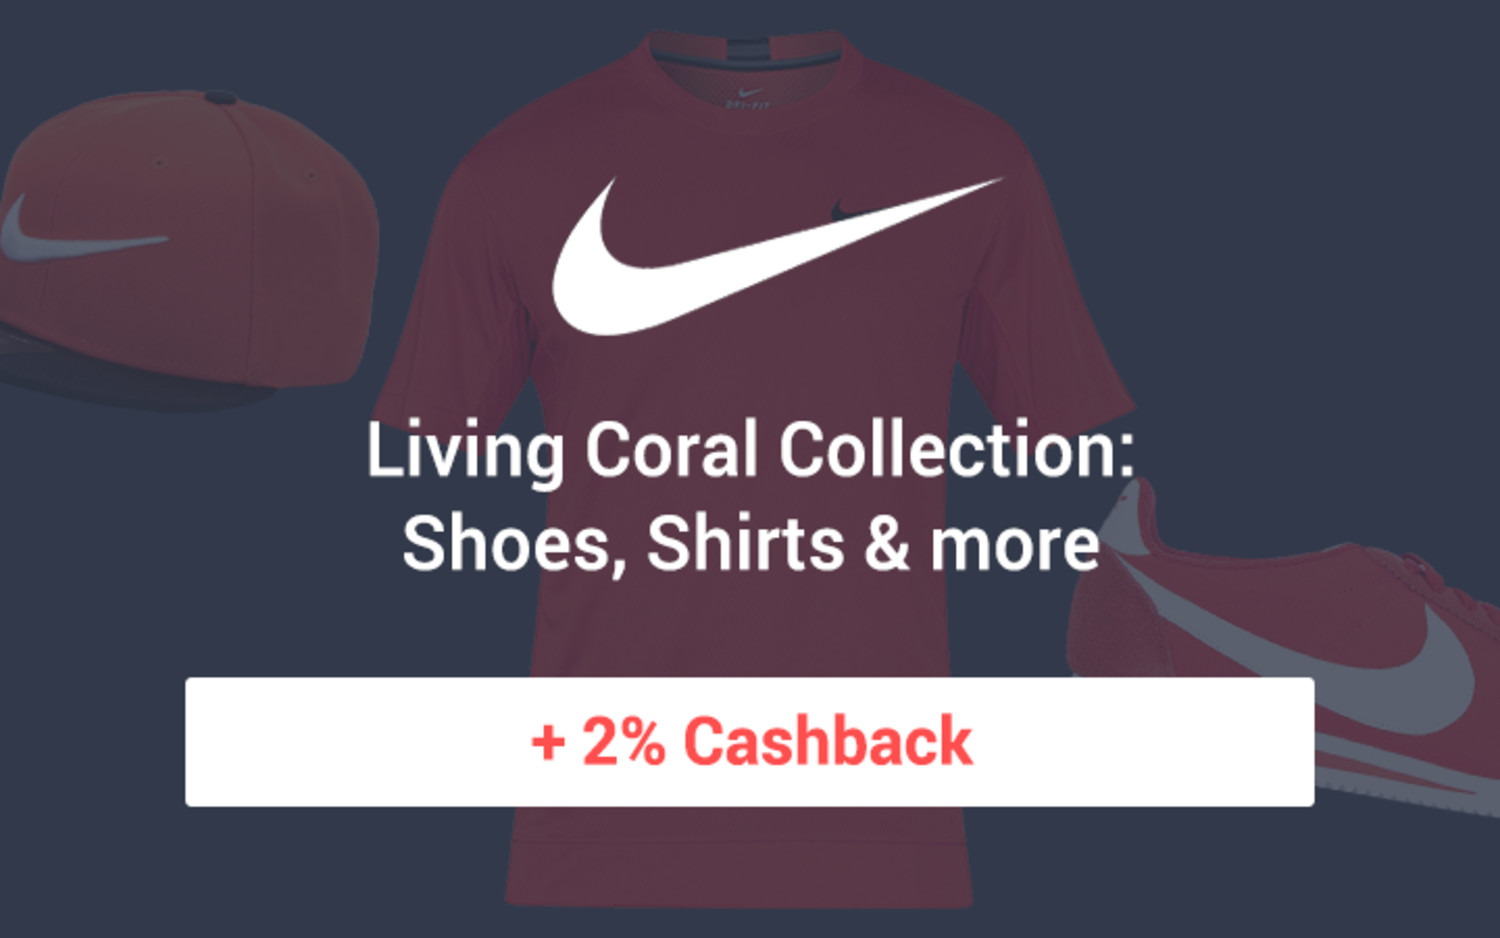 Nike Living Coral Collection: Shoes, Shirts & more + 2% Cashback